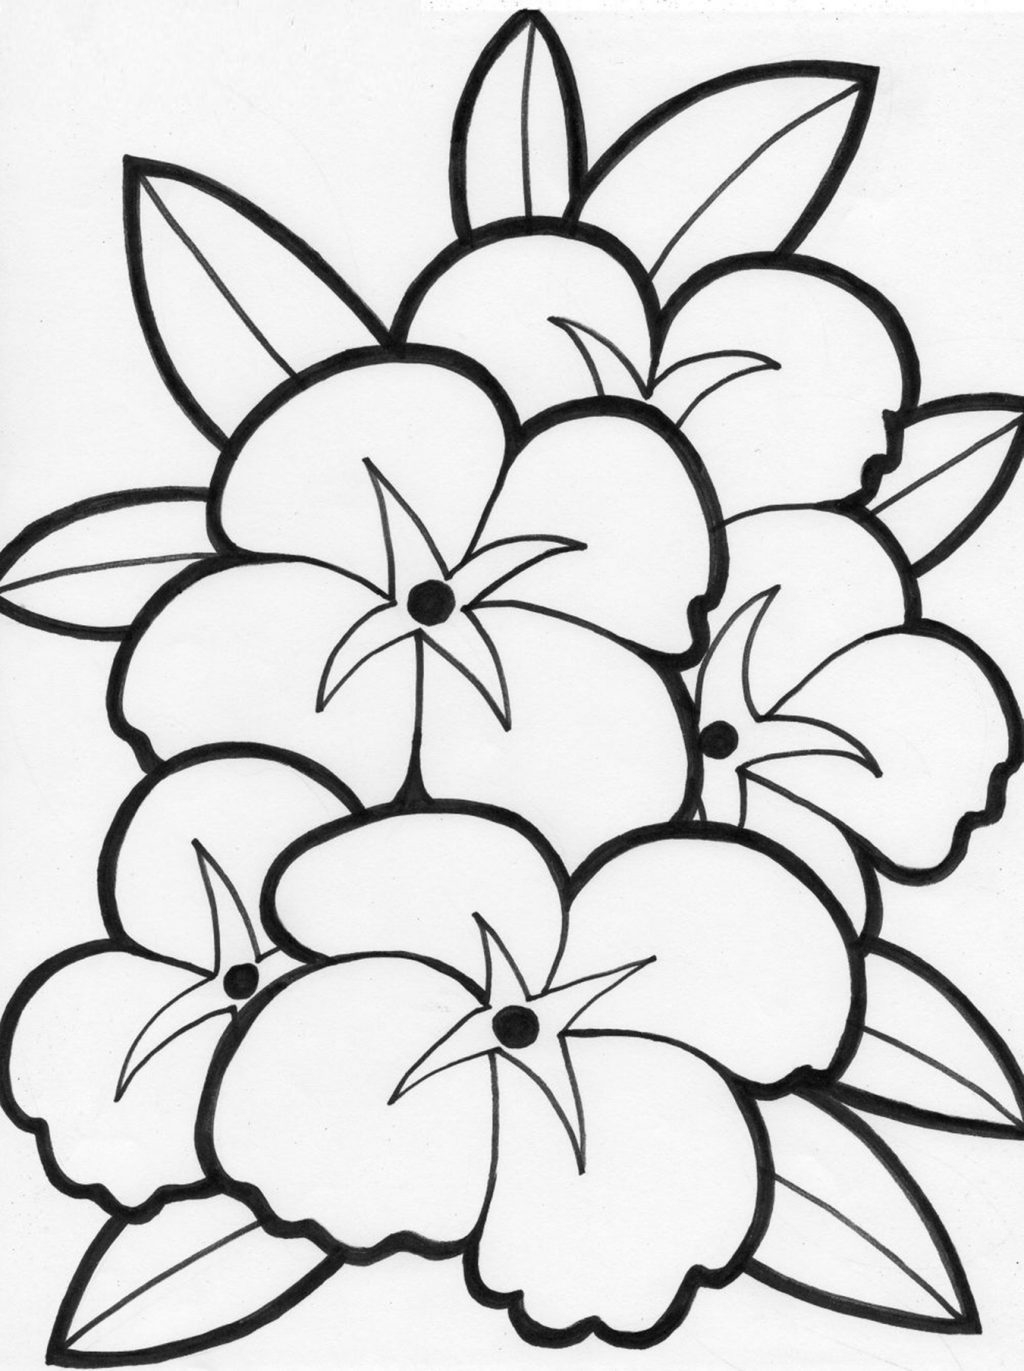 Christmas Coloring Pages For Elderly With Dementia Patients Download Free Sheets